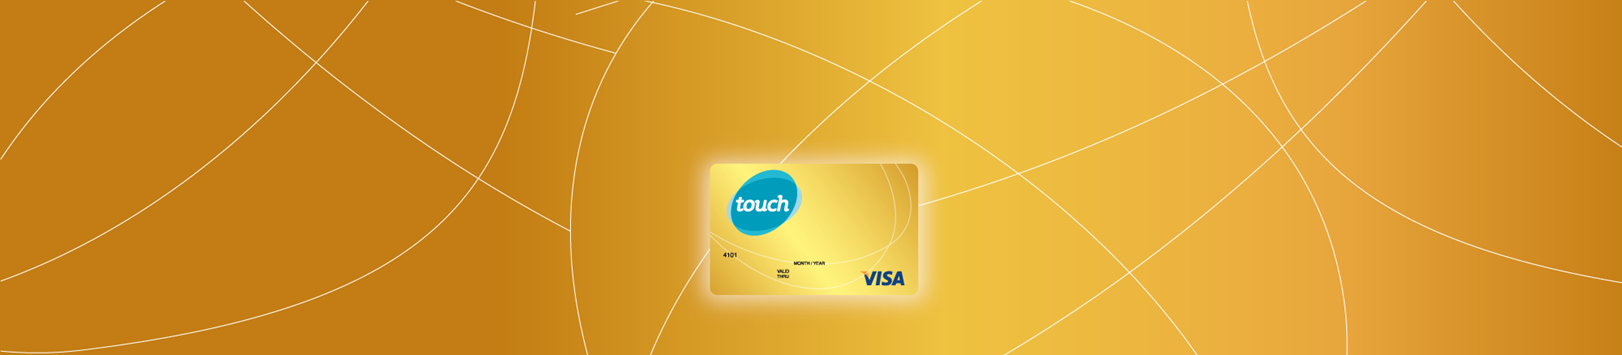 touch Gold Card